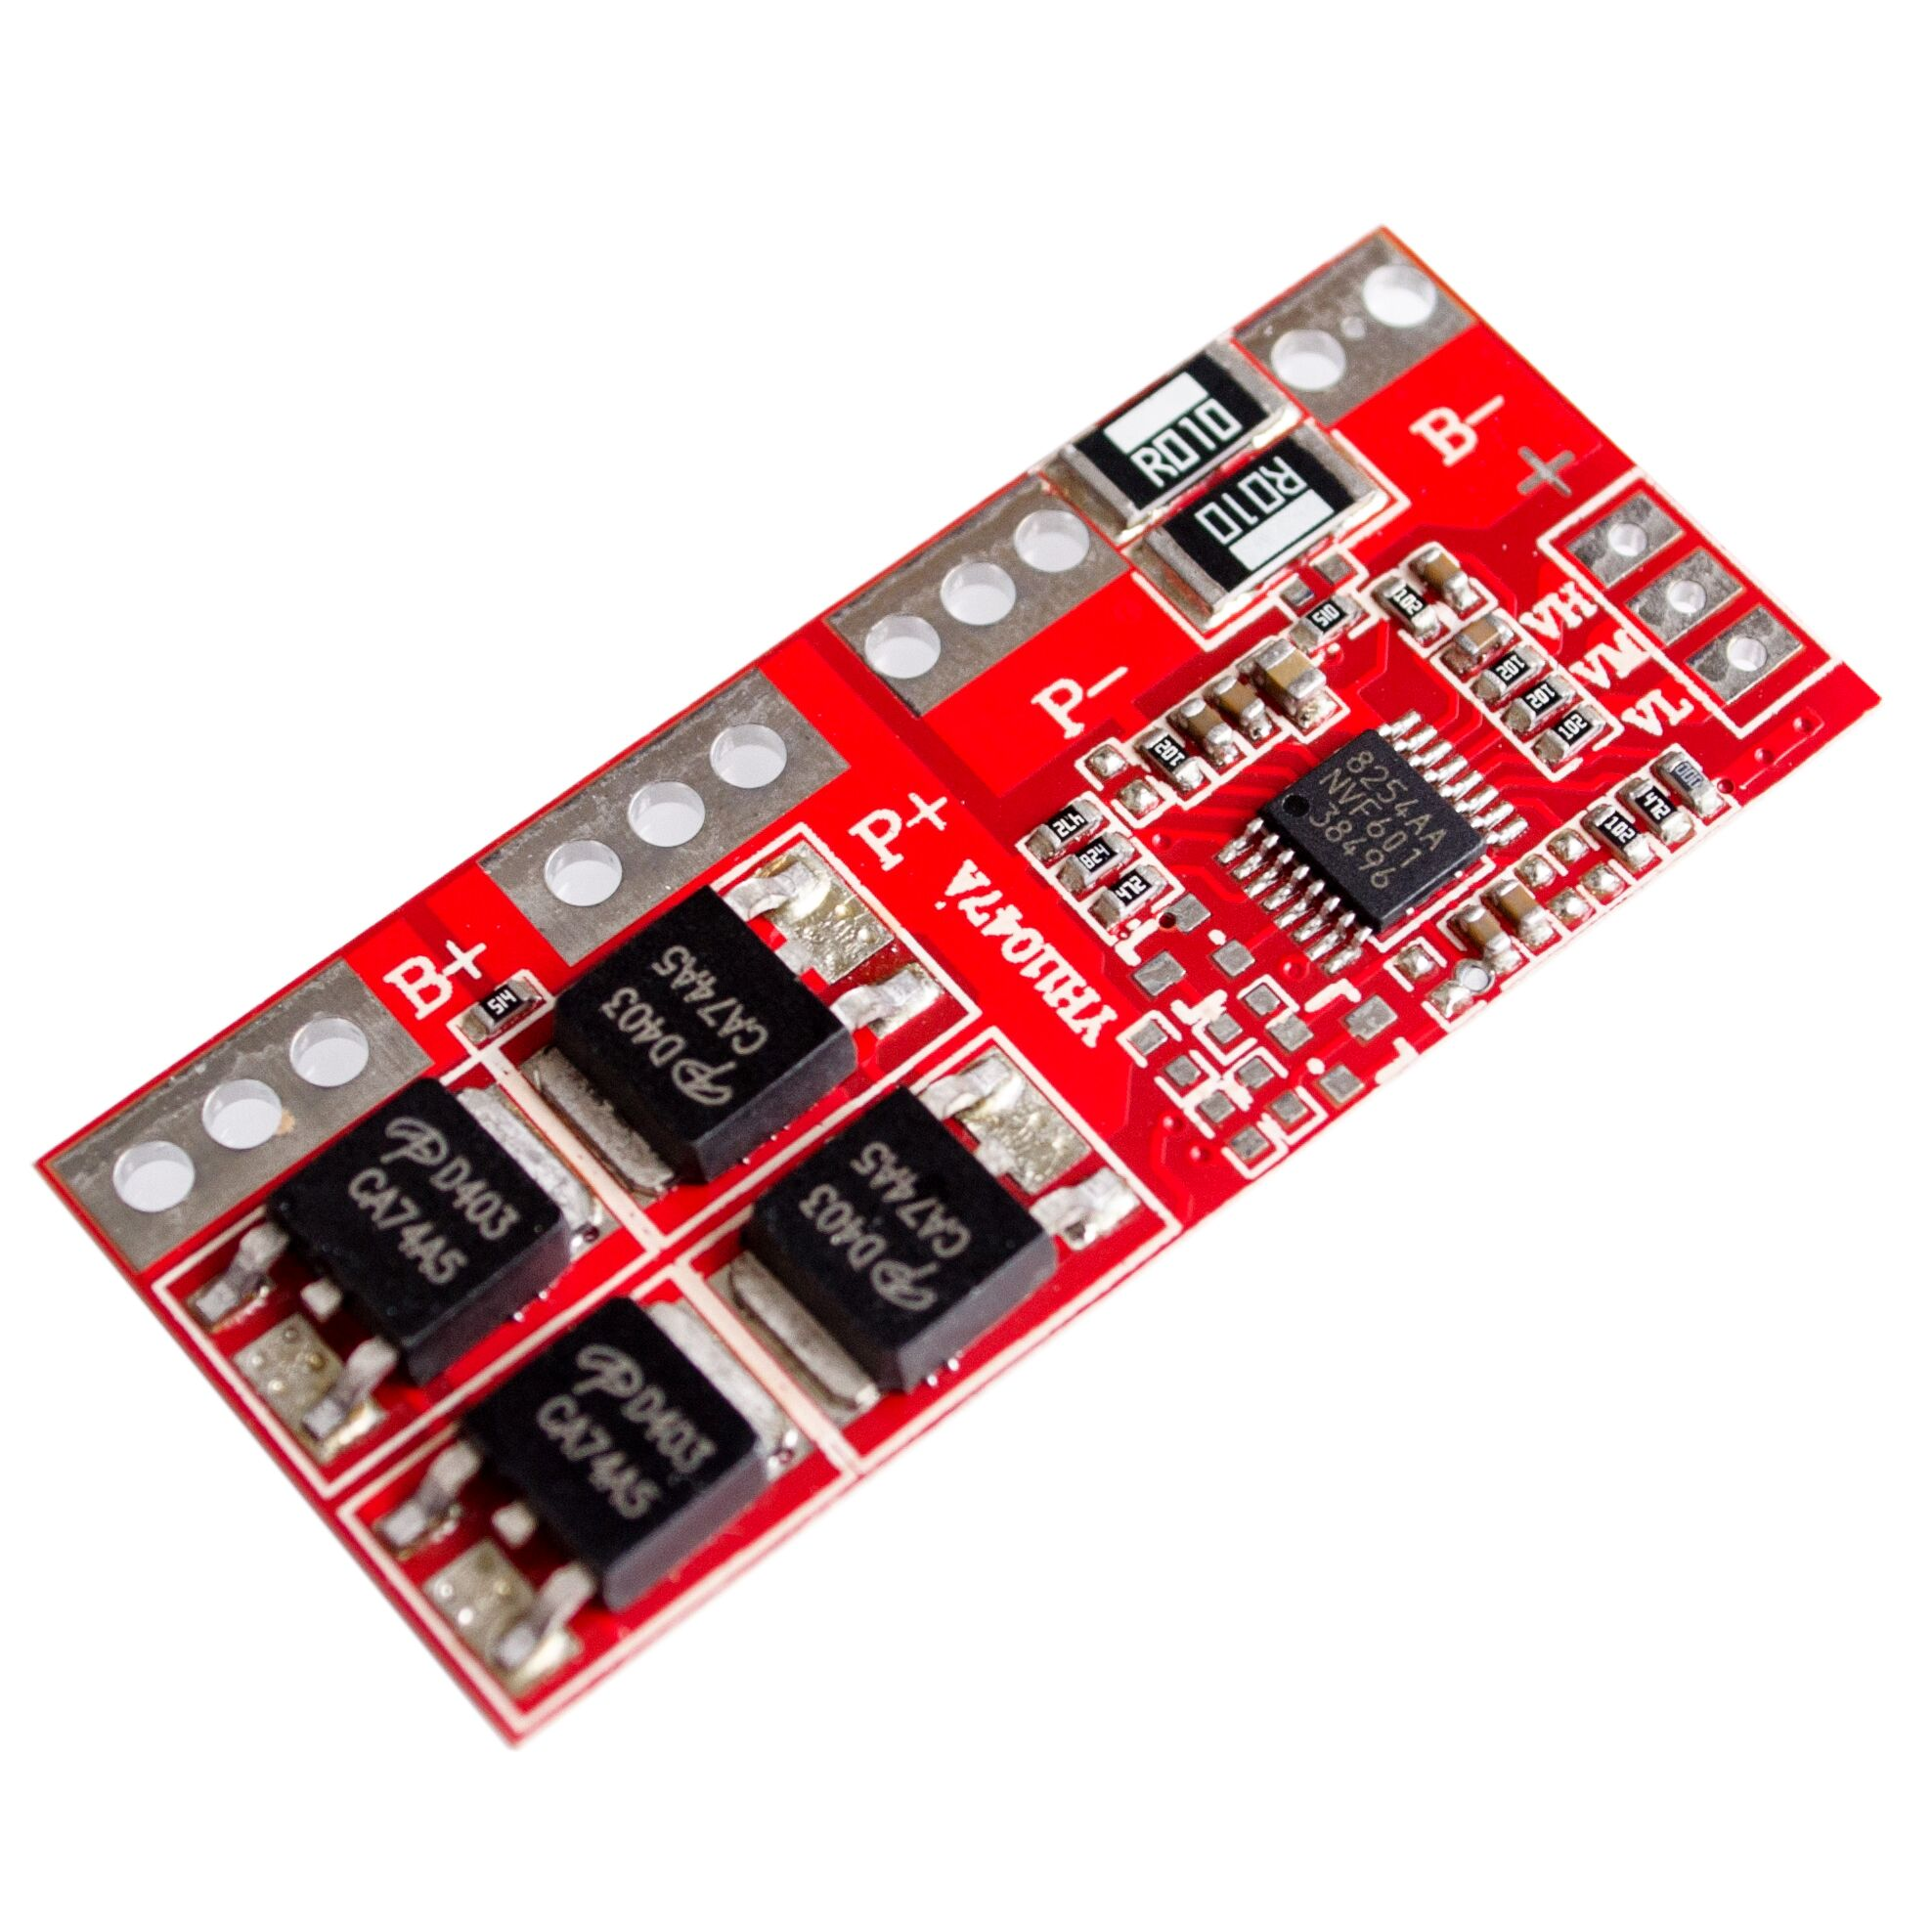 1PC 4S 30A Li-ion Lithium Battery 18650 Charger Protection Board 14.4V 14.8V 16.8V 4S BMS